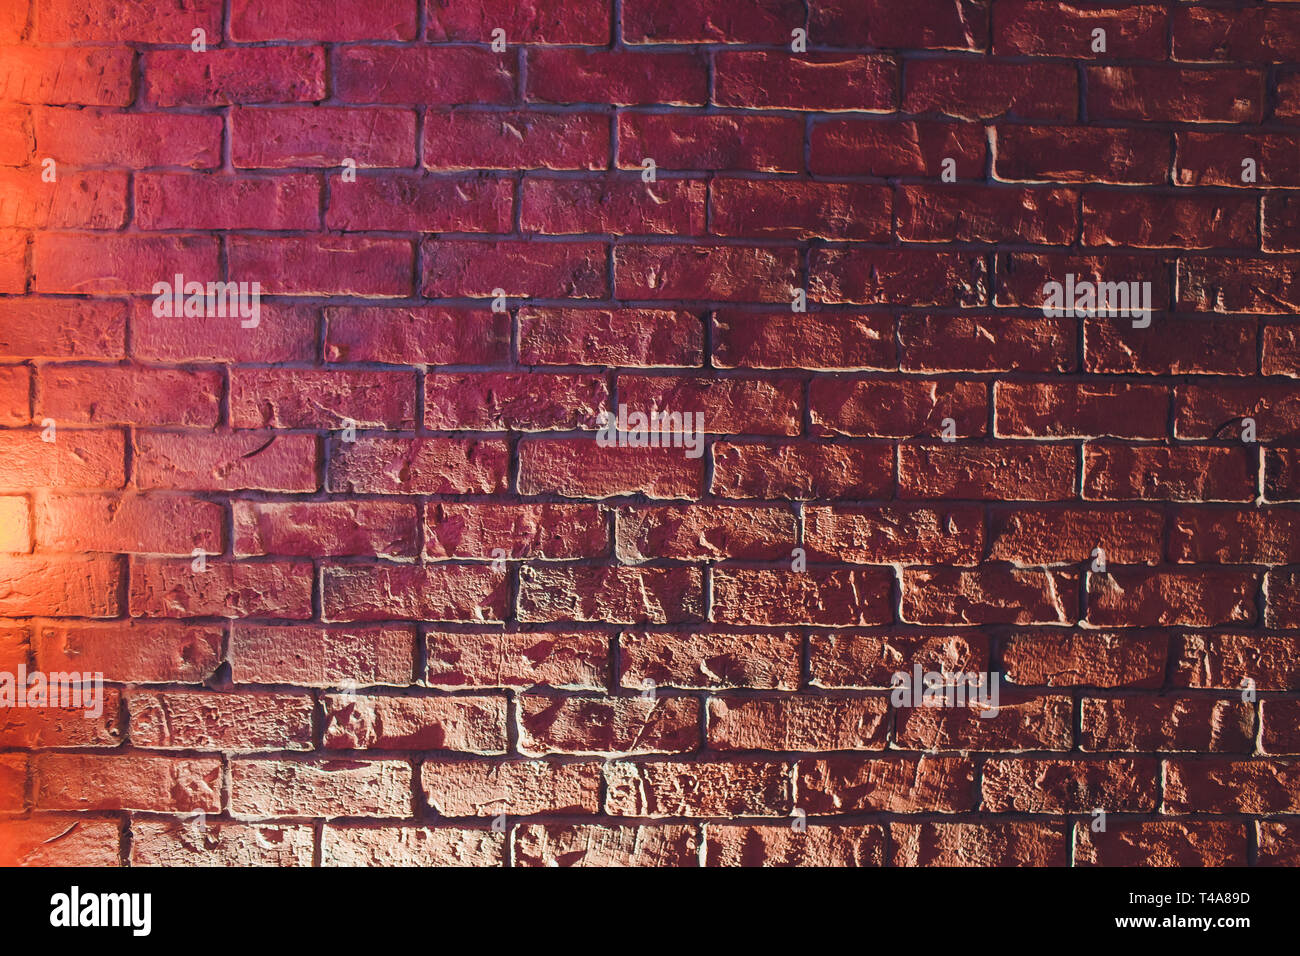 Brick wall, background, neon light Low key photo with lighting effect. - Stock Image